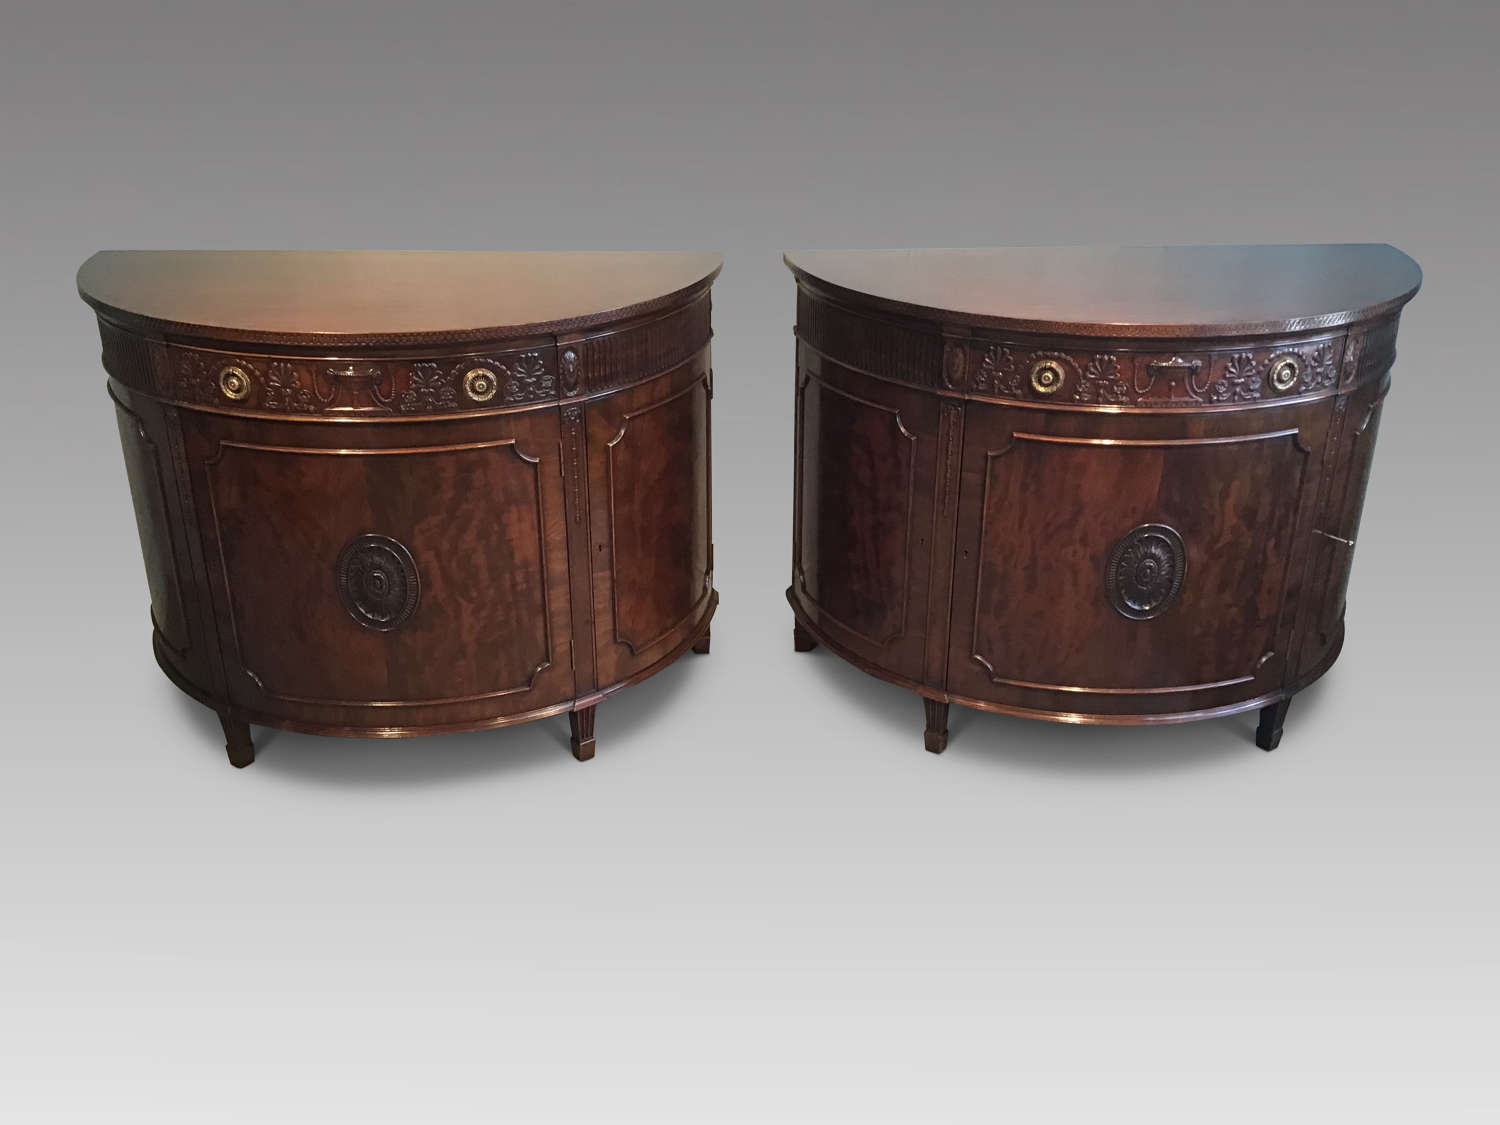 Pair of mahogany demi-lune commodes